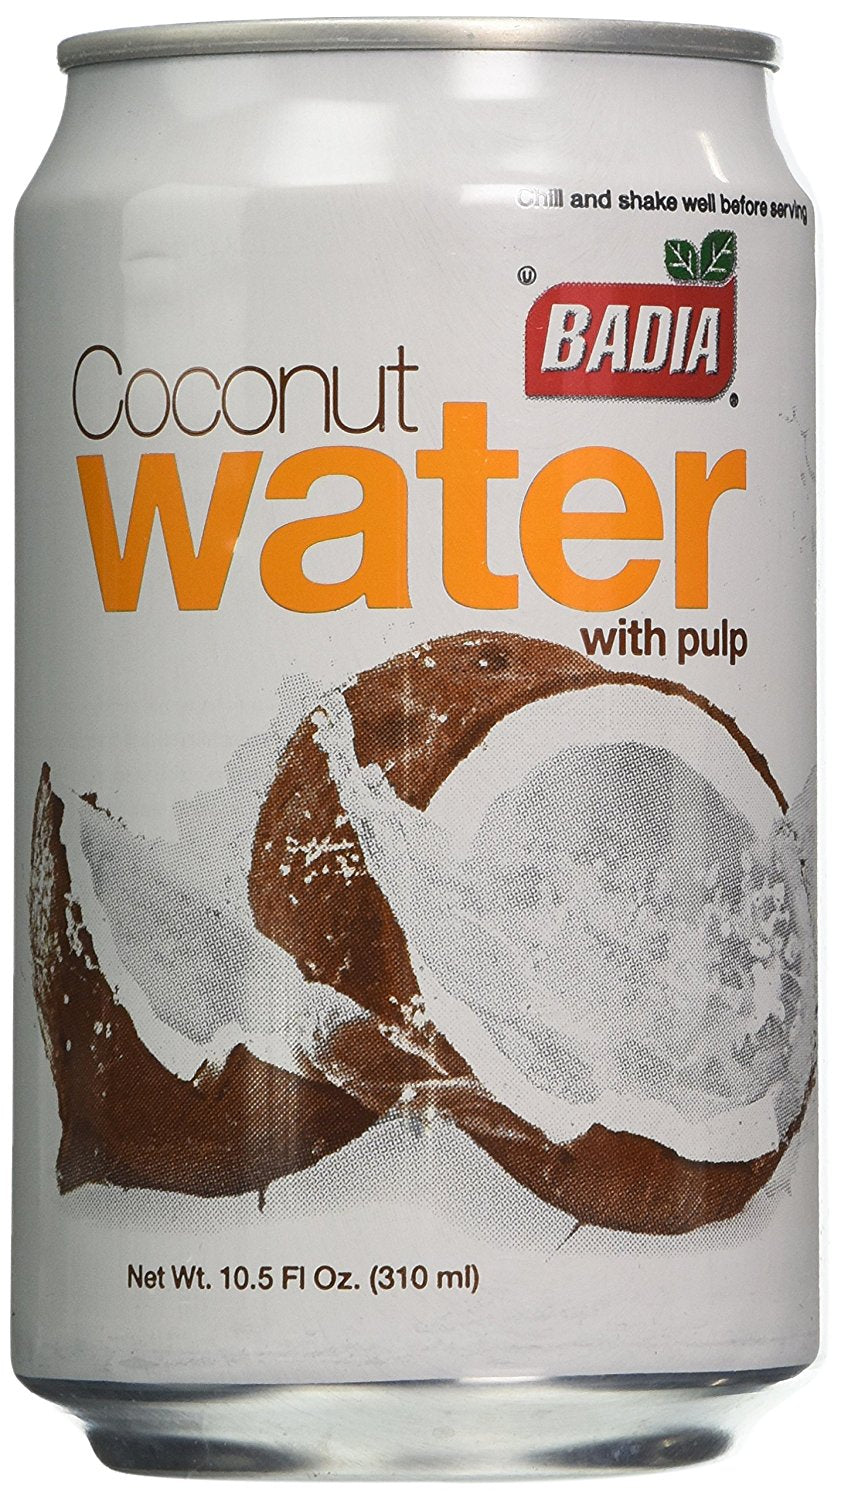 BADIA: Coconut Water with Pulp, 10.5 oz